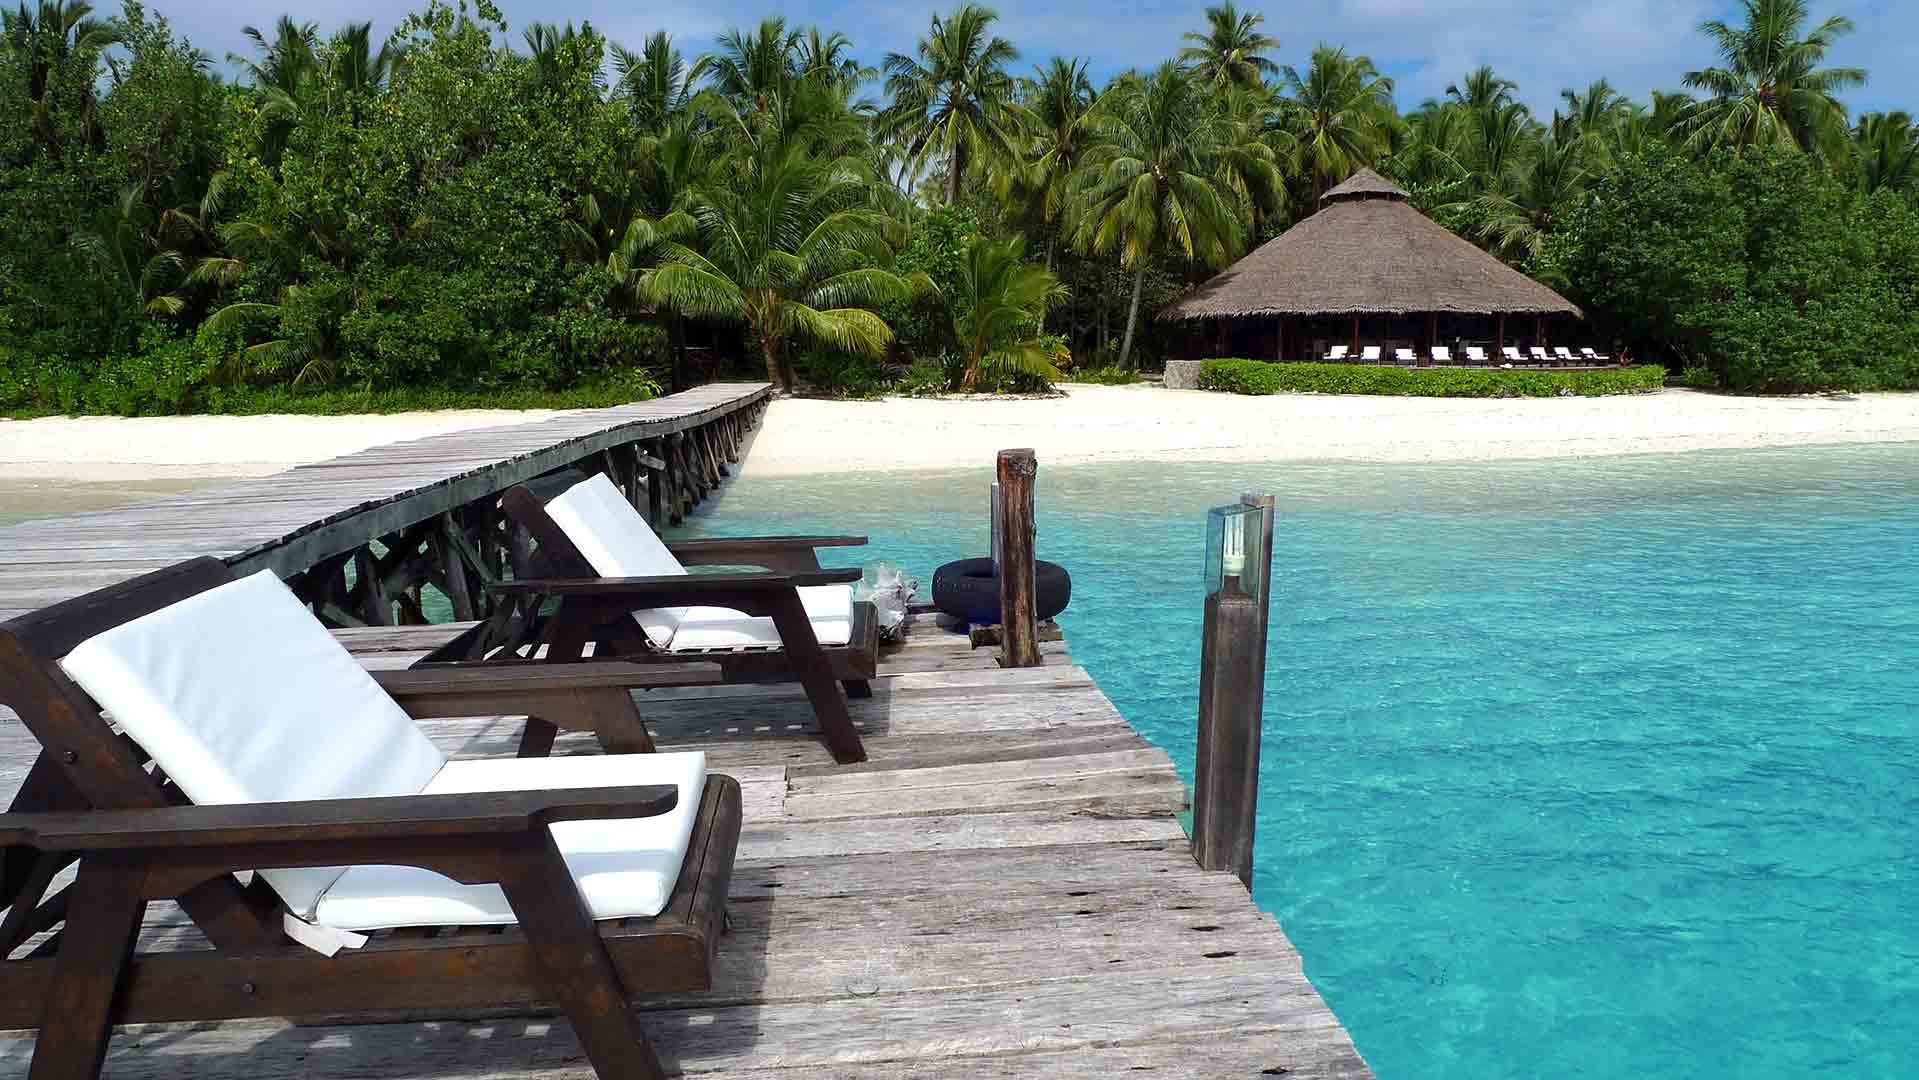 Two chairs on the path way of a secluded beach resort